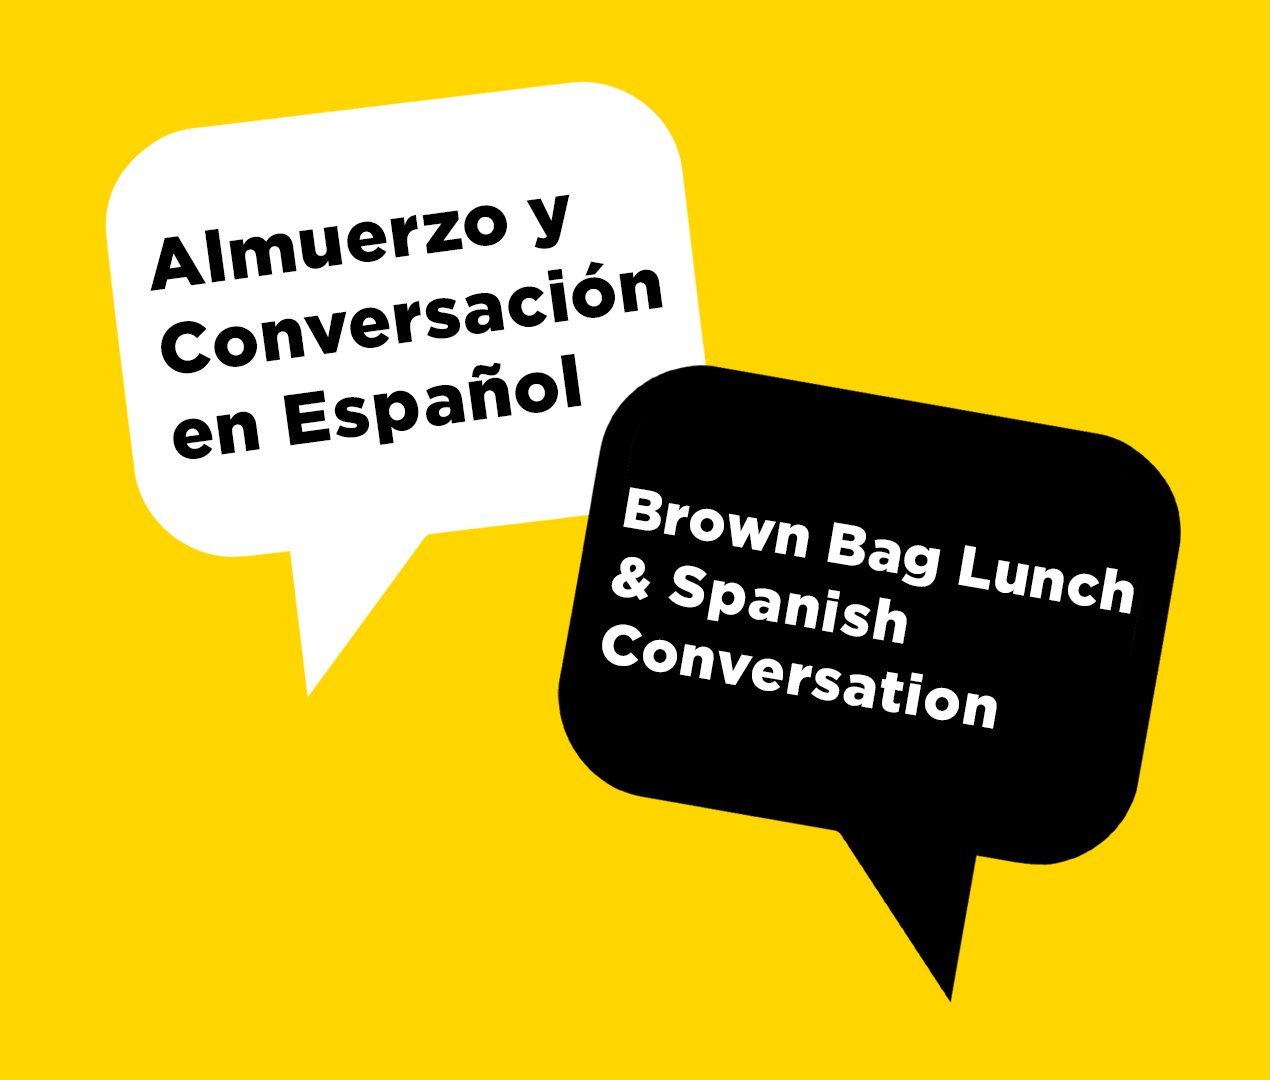 Brown Bag Lunch and Spanish Conversation